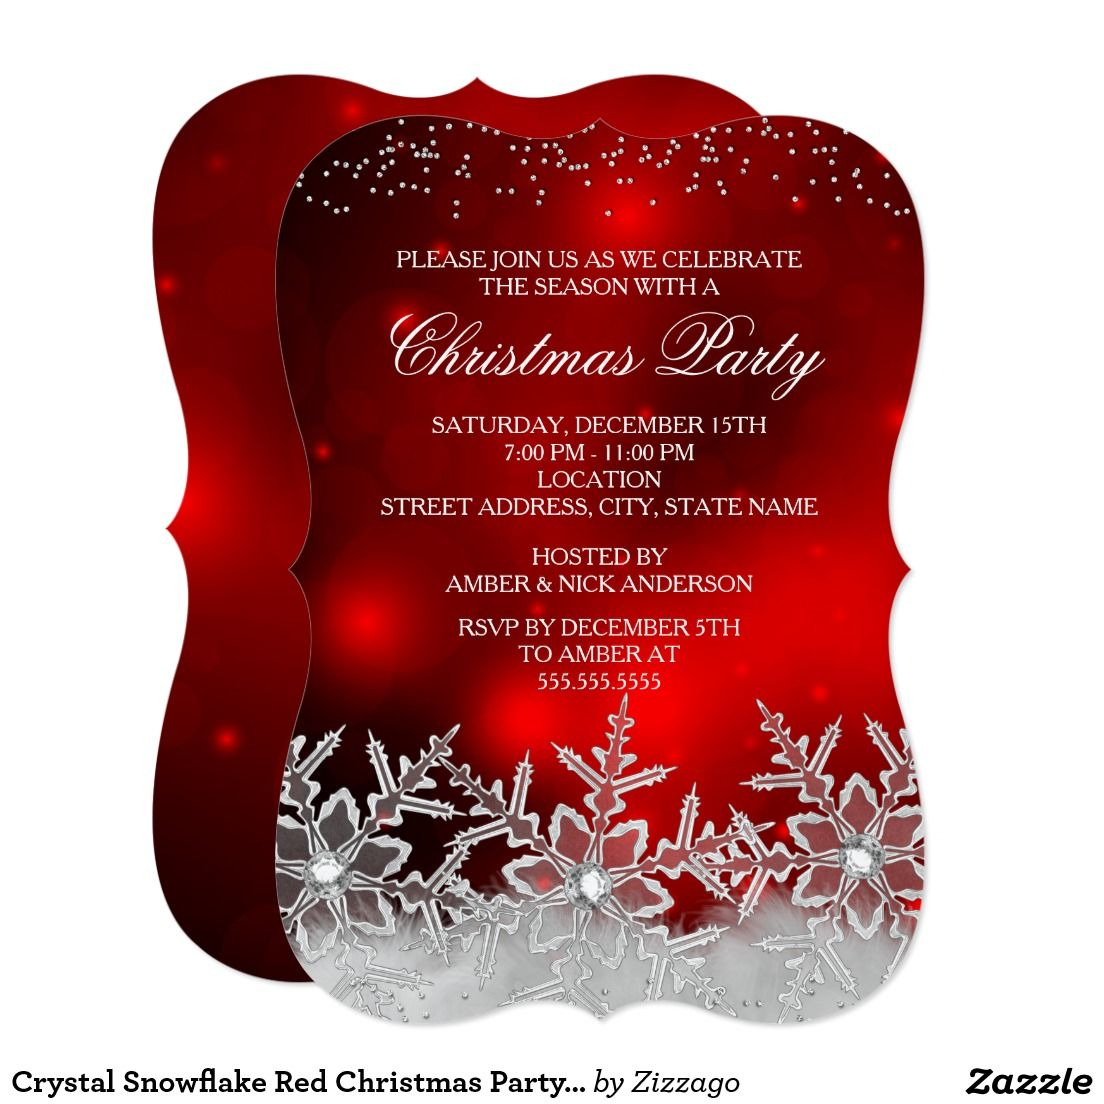 Crystal Snowflake Red Christmas Party Invite | Christmas Party ...